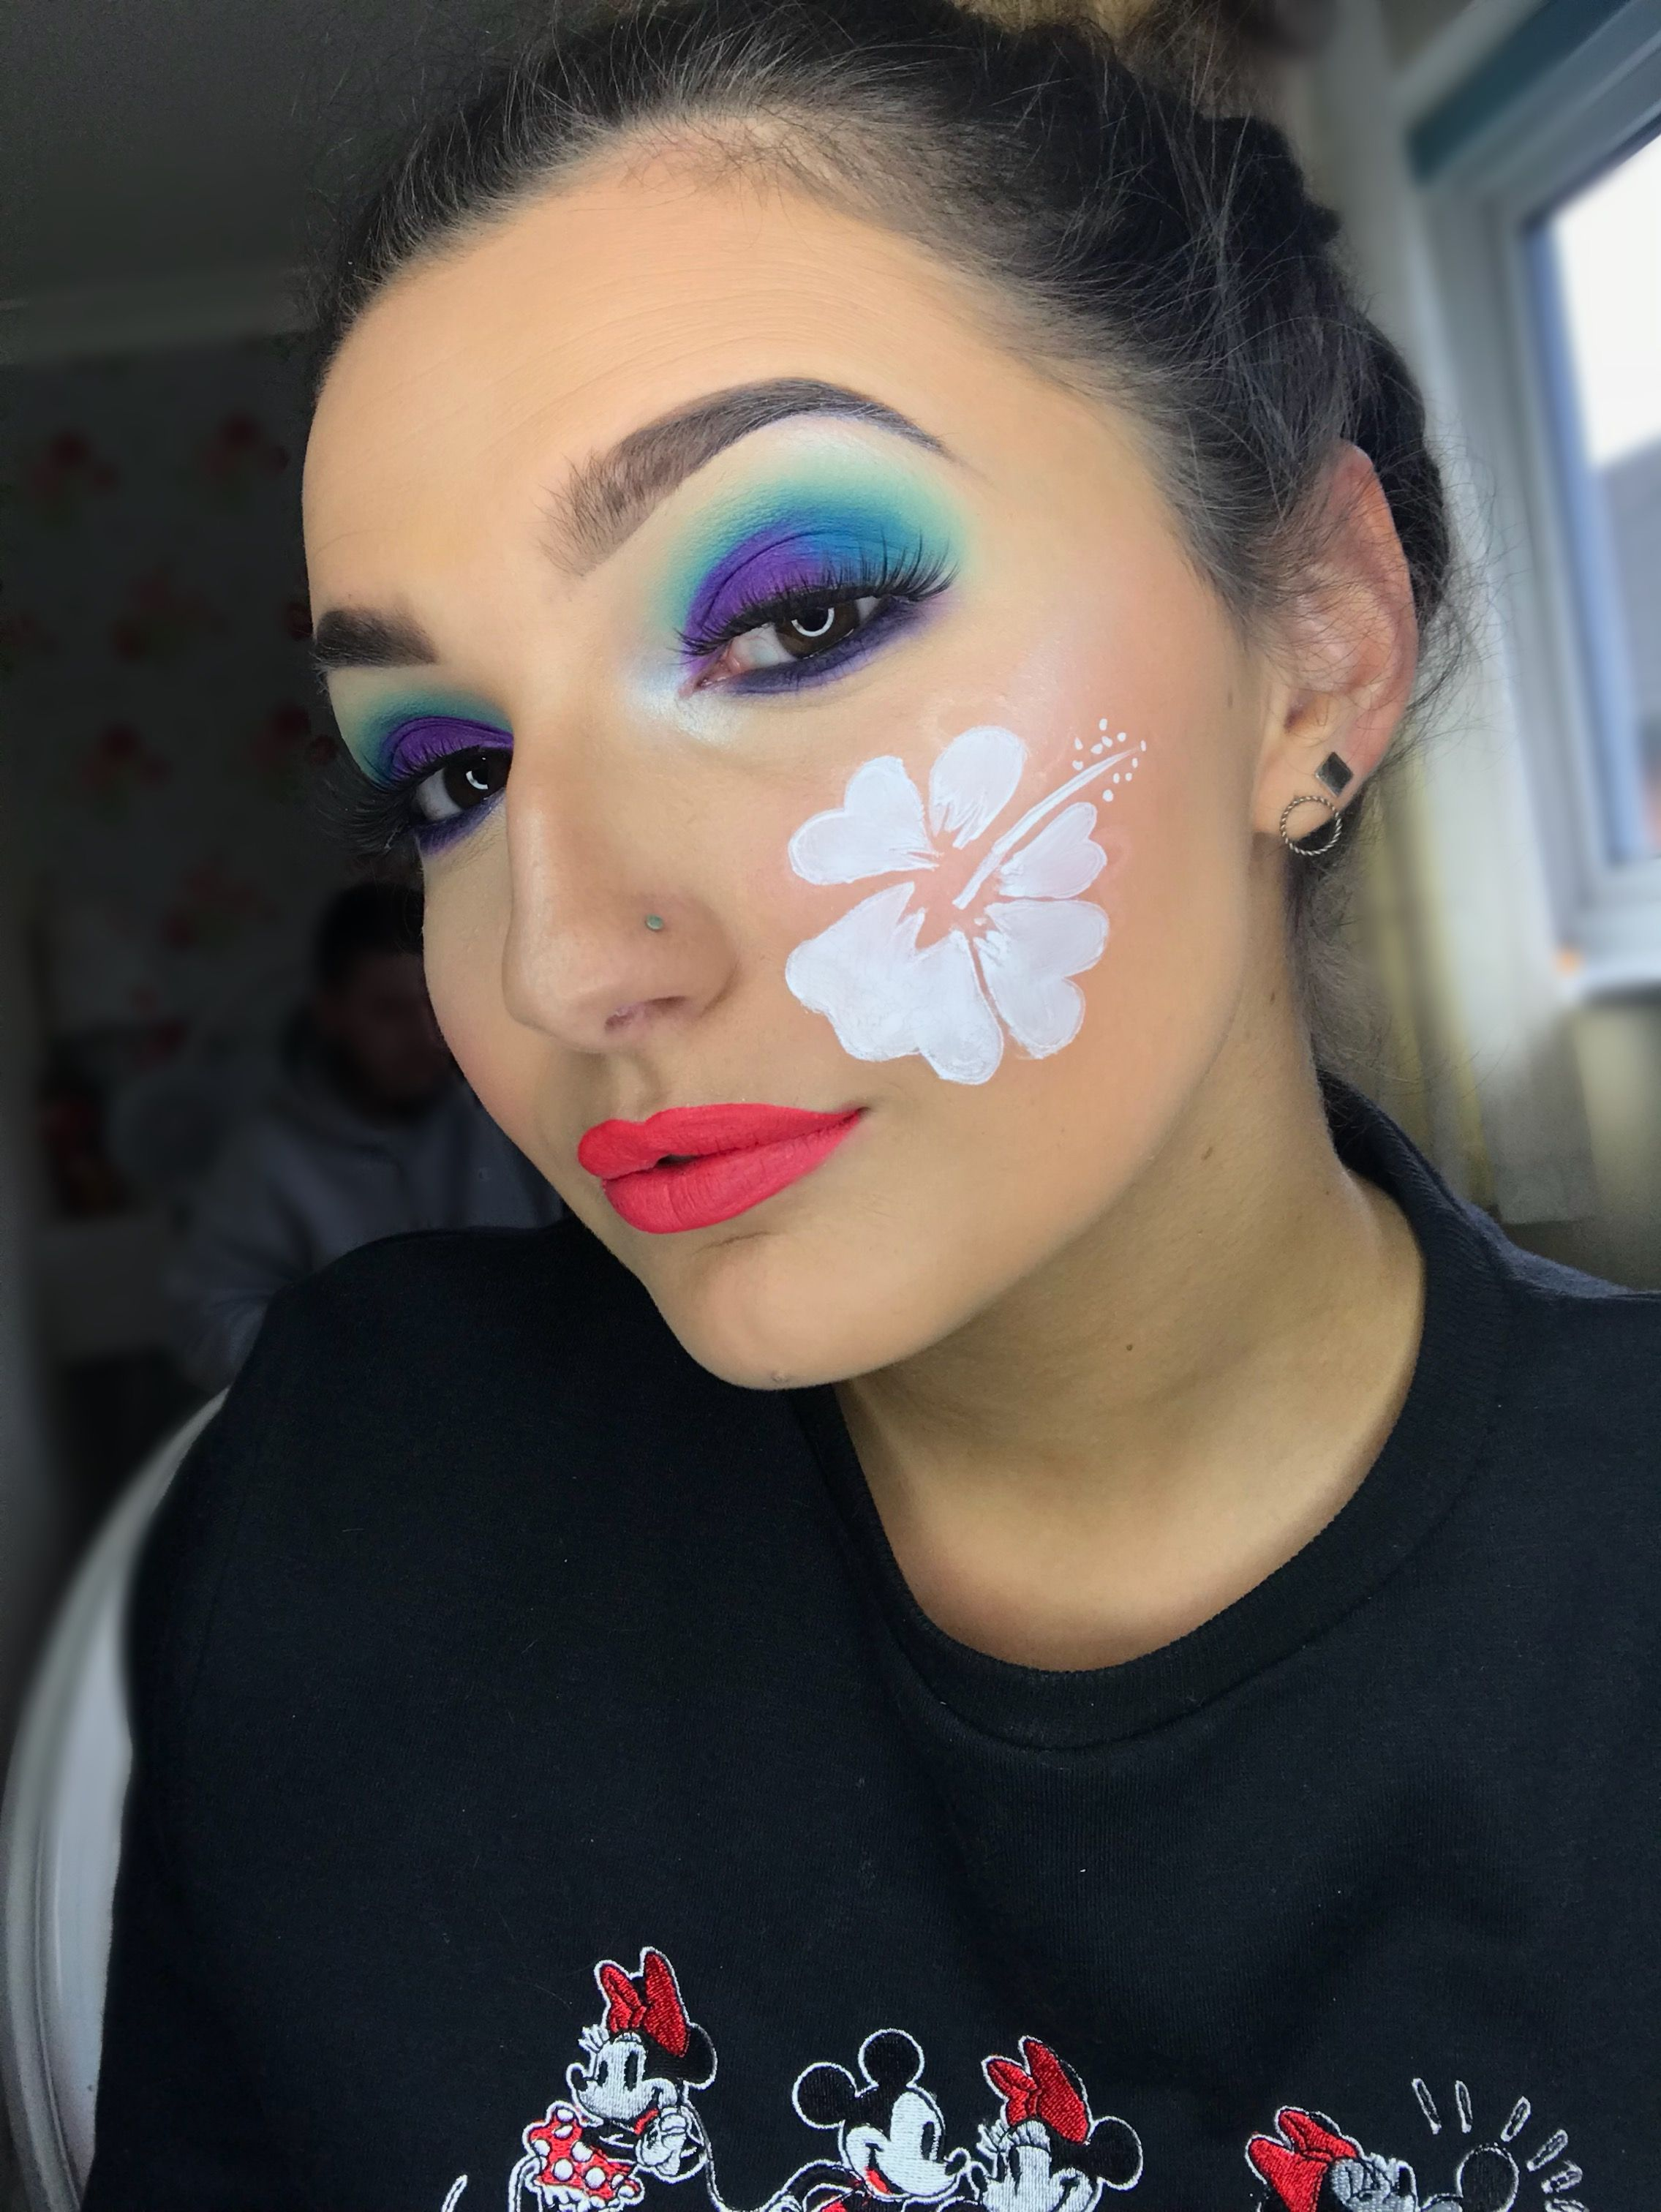 Lilo and Stitch inspired makeup look done by myself